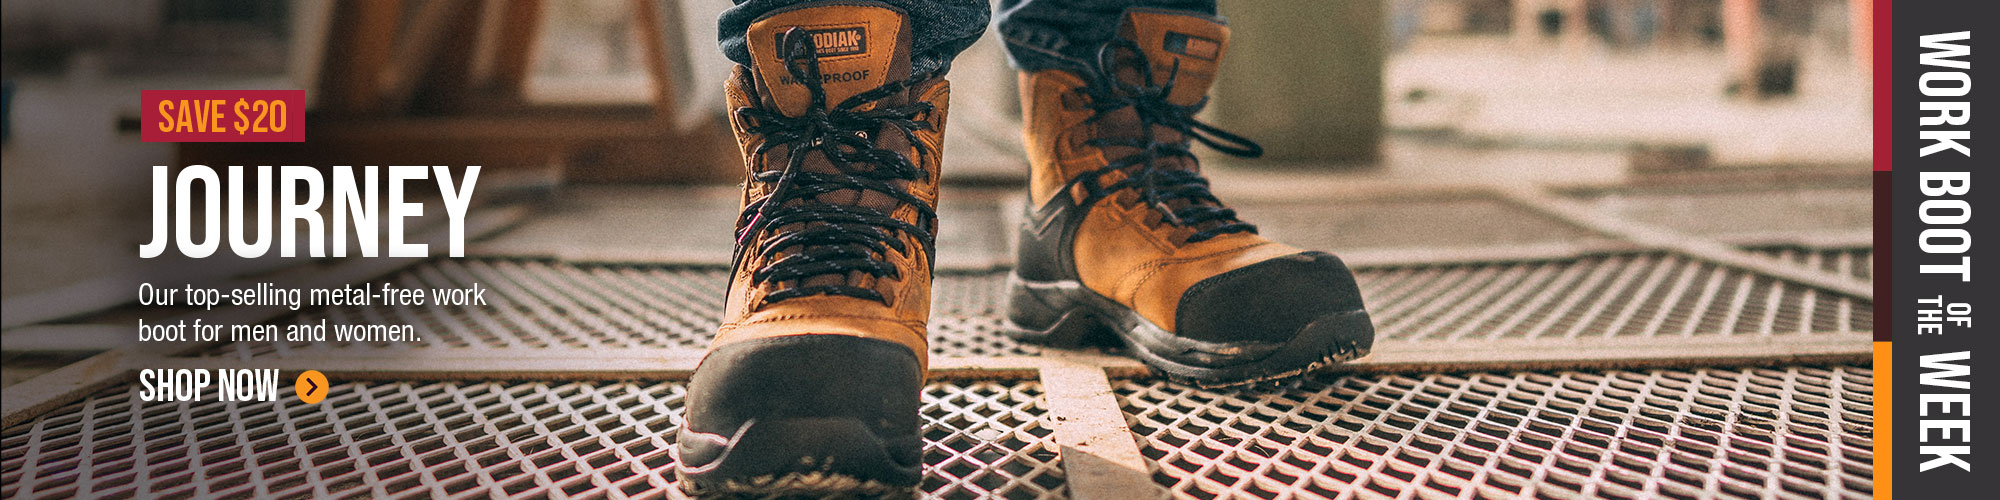 Shop Work Boot of the Journey : Crusade and save $20